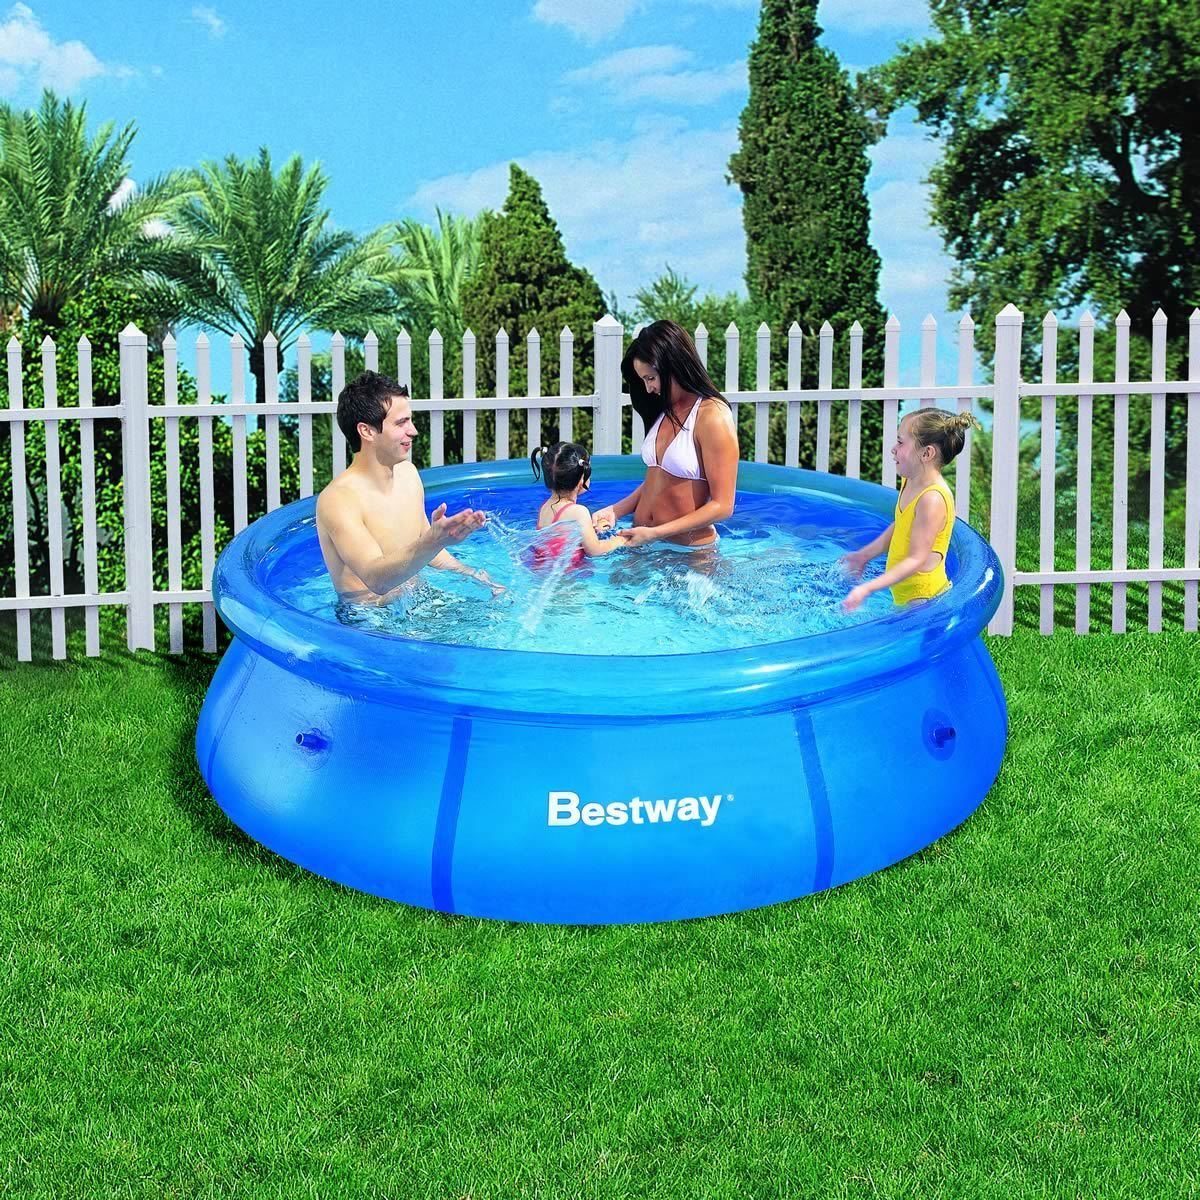 Details about 8FT Fast Set Inflatable Swimming Pool Garden Outdoor Paddling  Kids Family Water